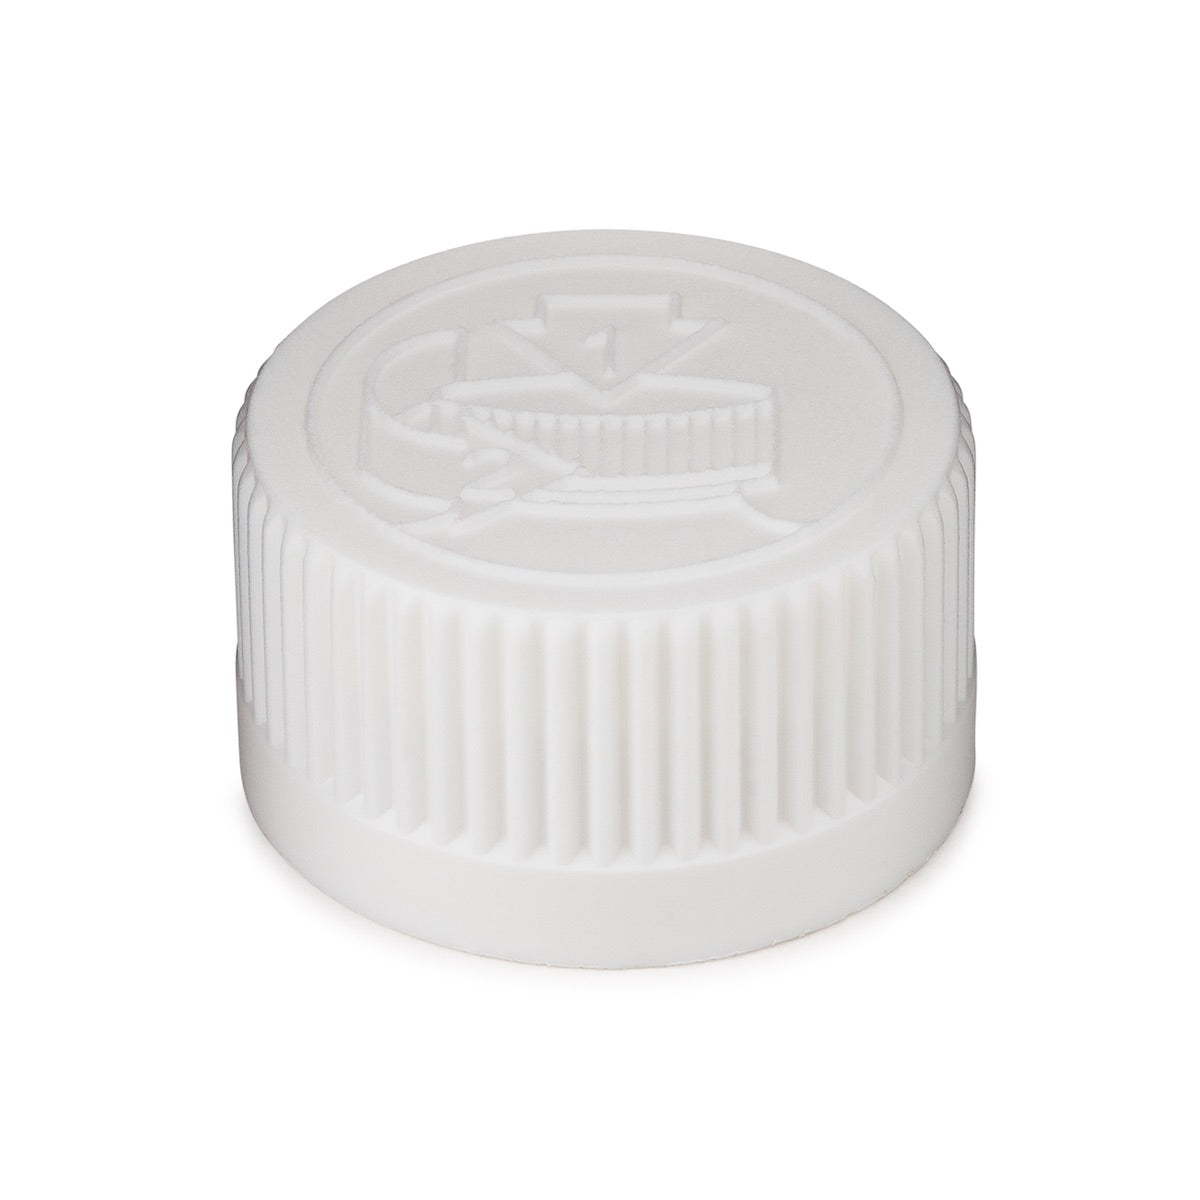 24-400 Child Resistant Screw Cap